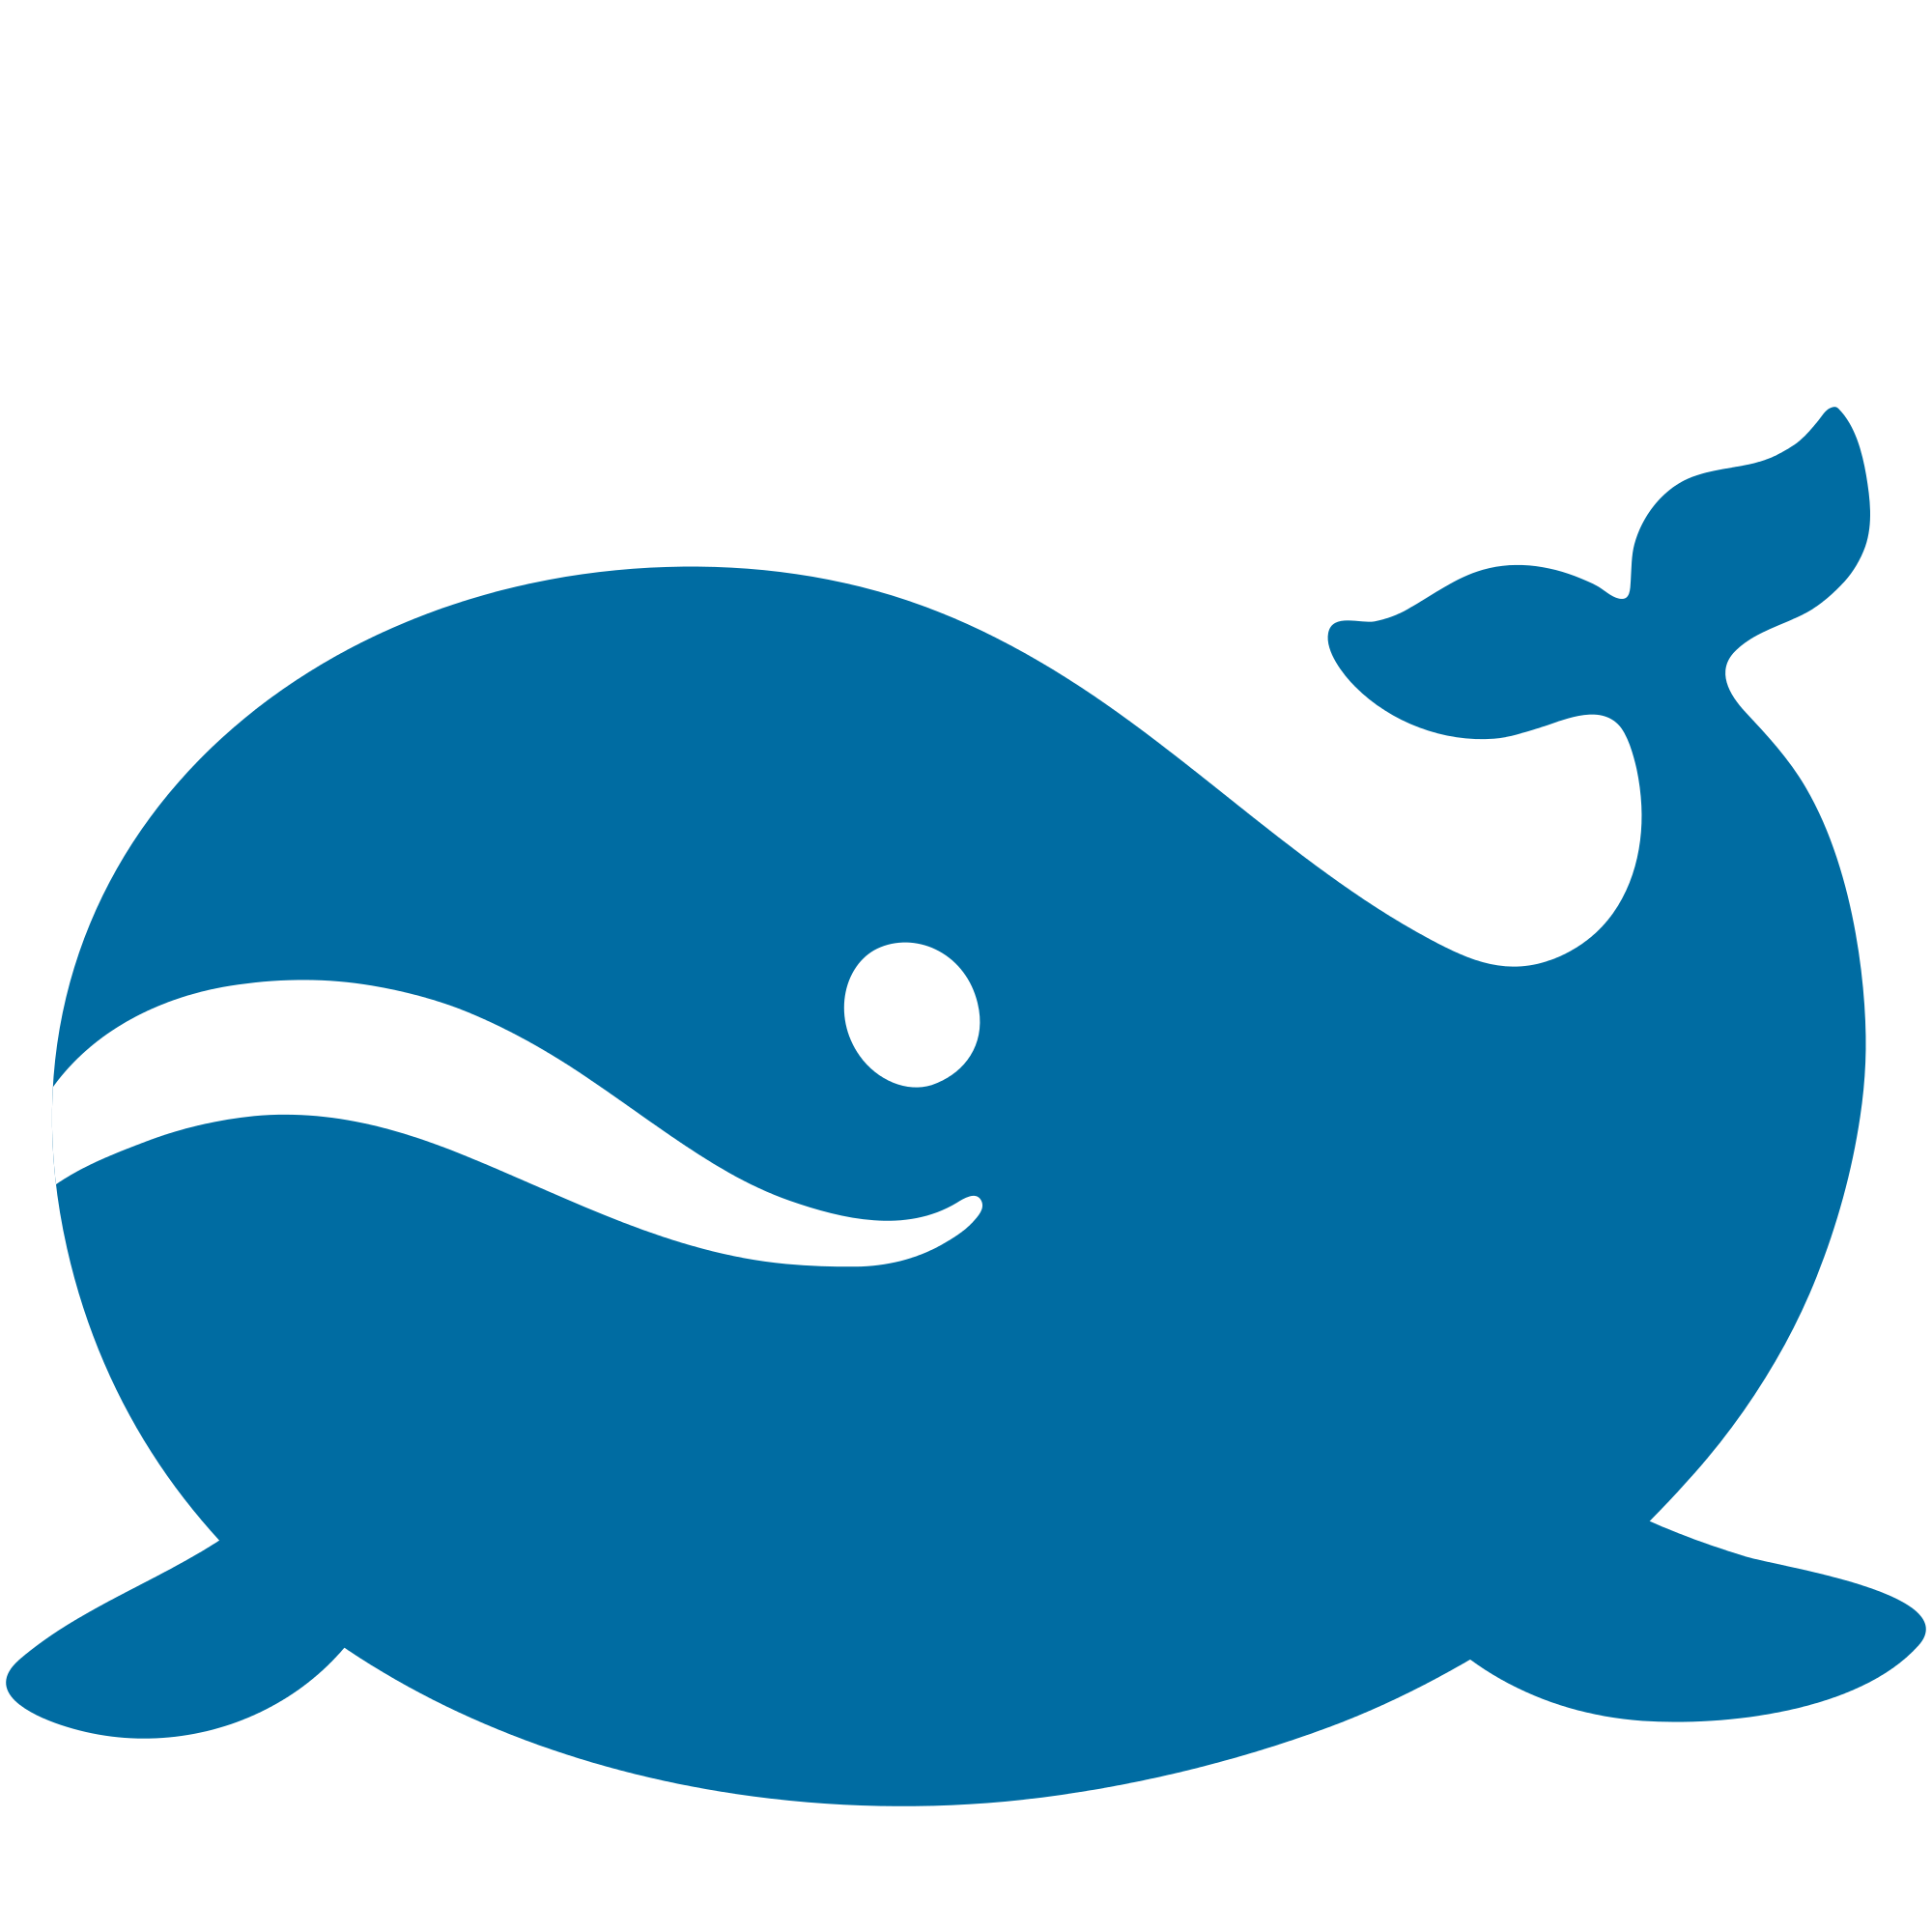 Clipart dolphin dolfin. A simple smooth observation